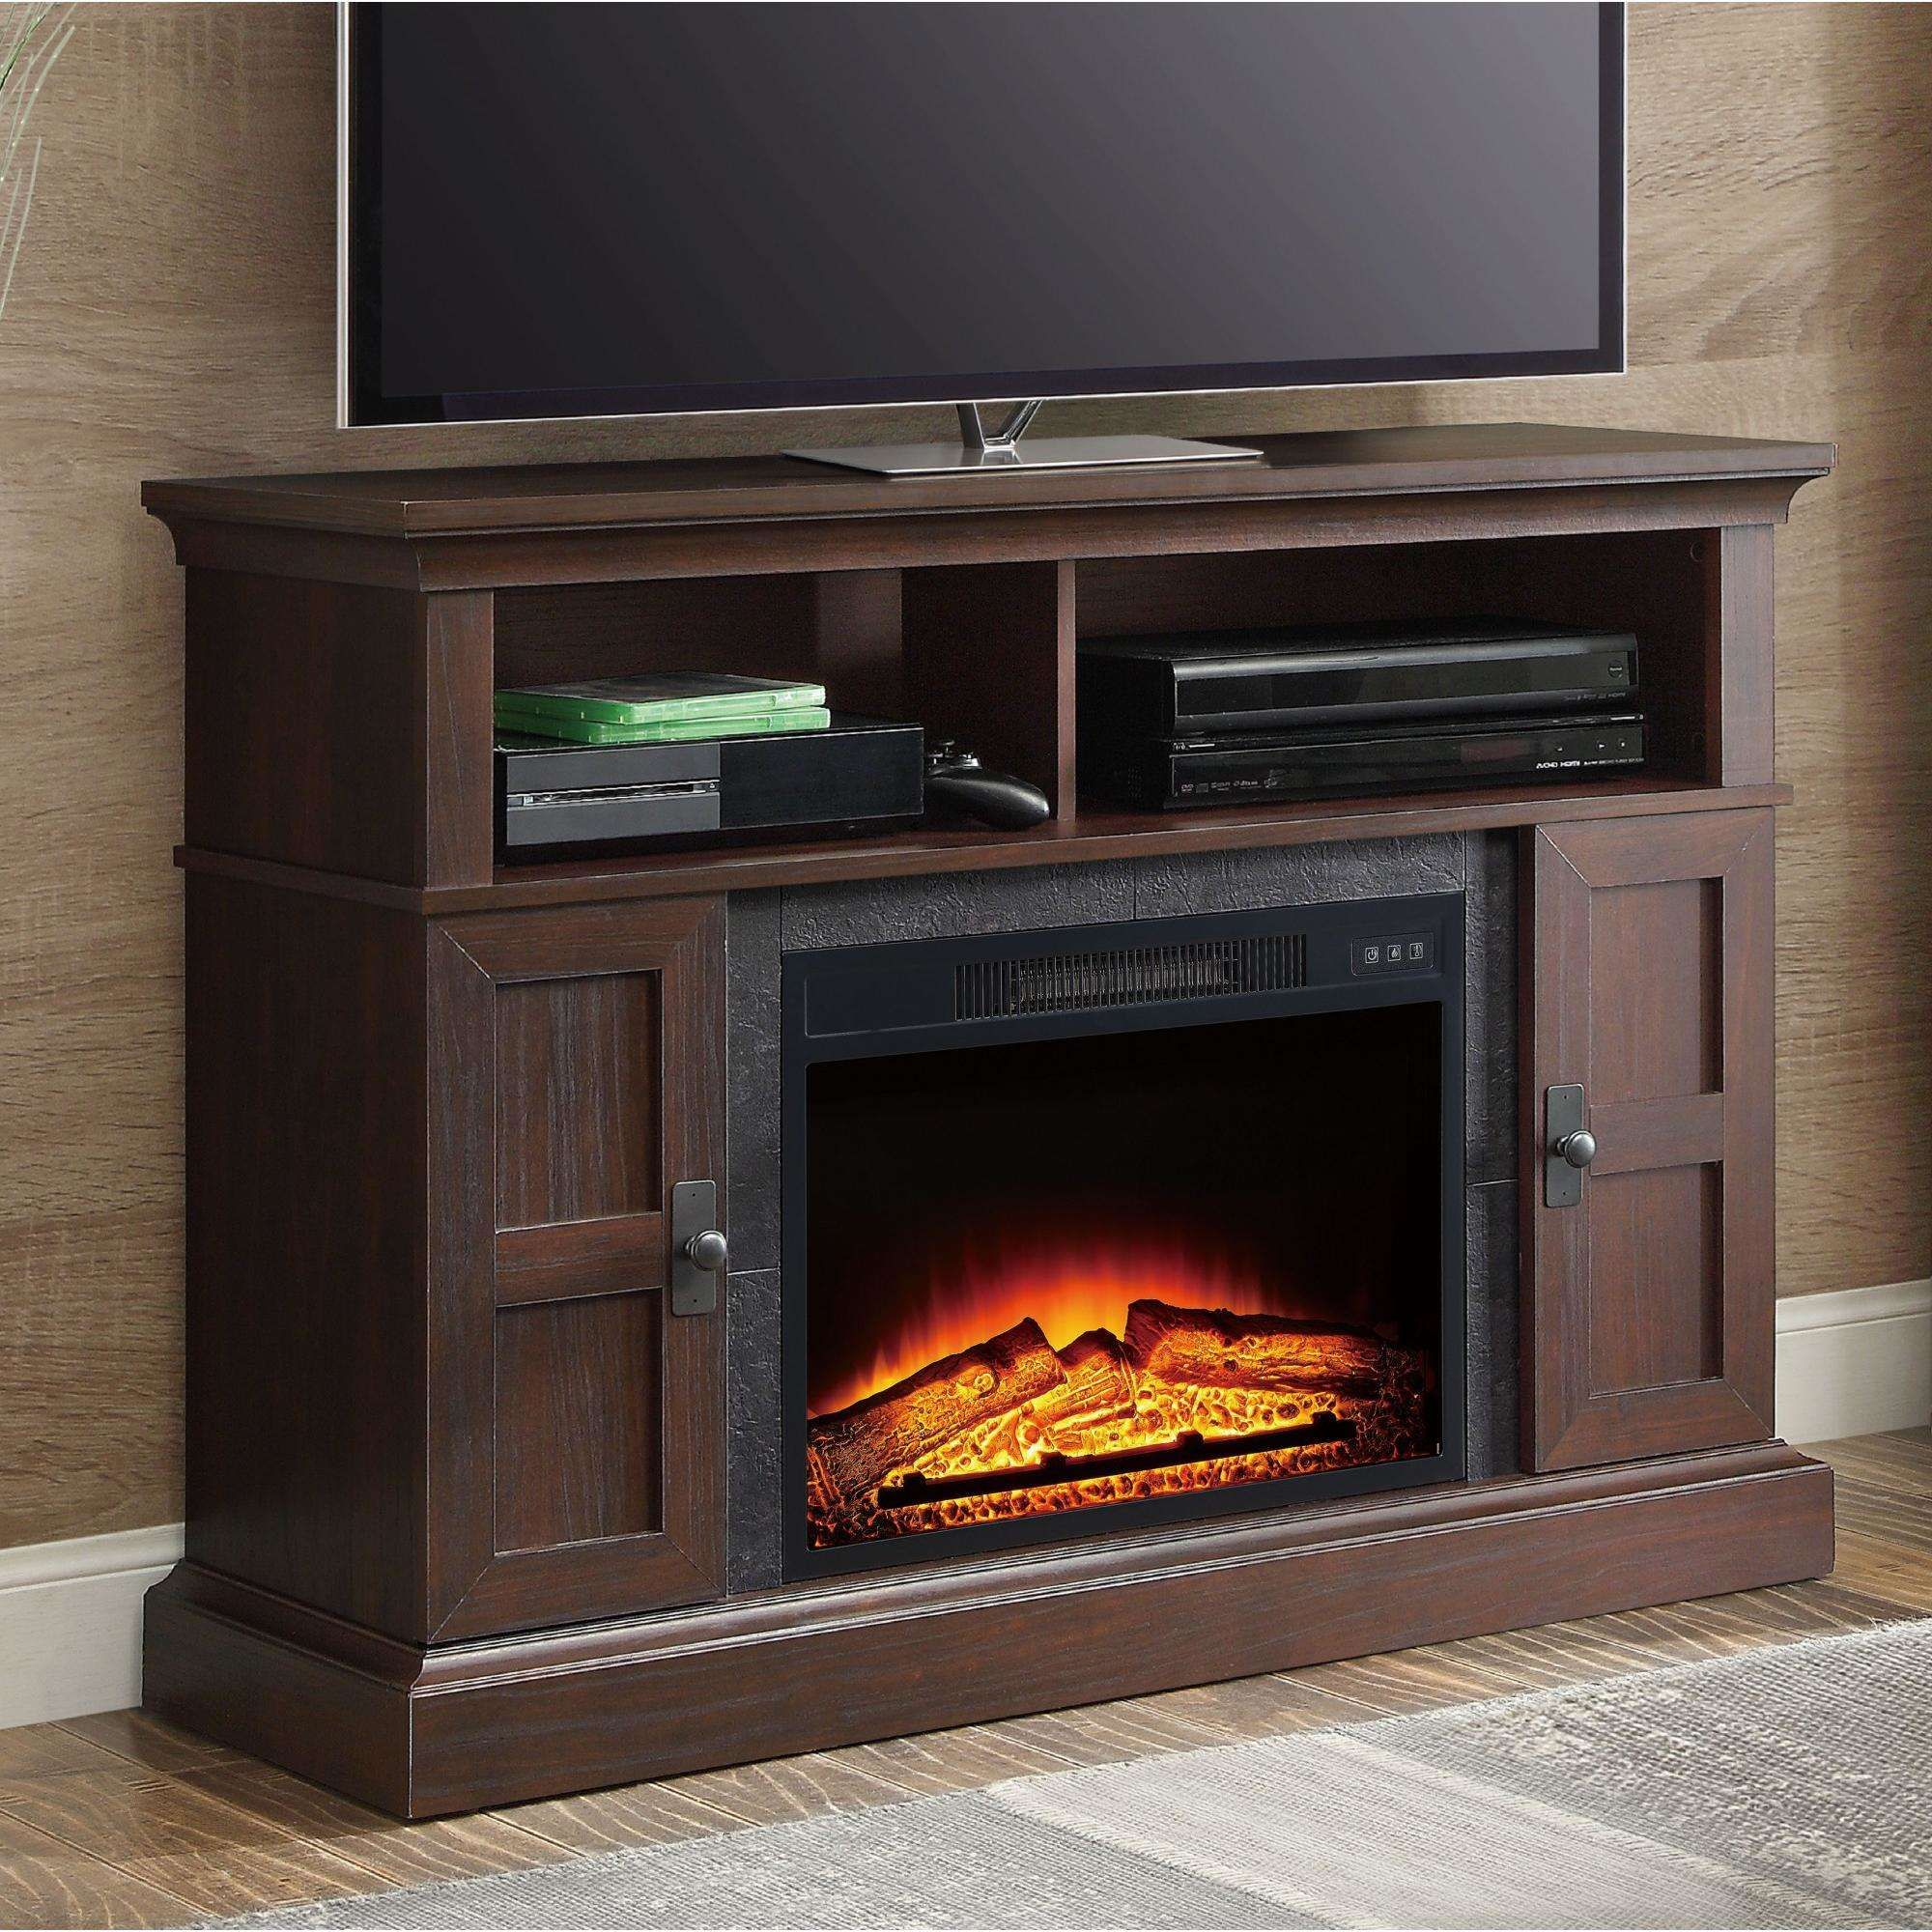 Whalen Media Fireplace For Your Home Television Stand Fits Tvs Up To 55 Mu Fireplace Console Fireplace Entertainment Electric Fireplace Entertainment Center